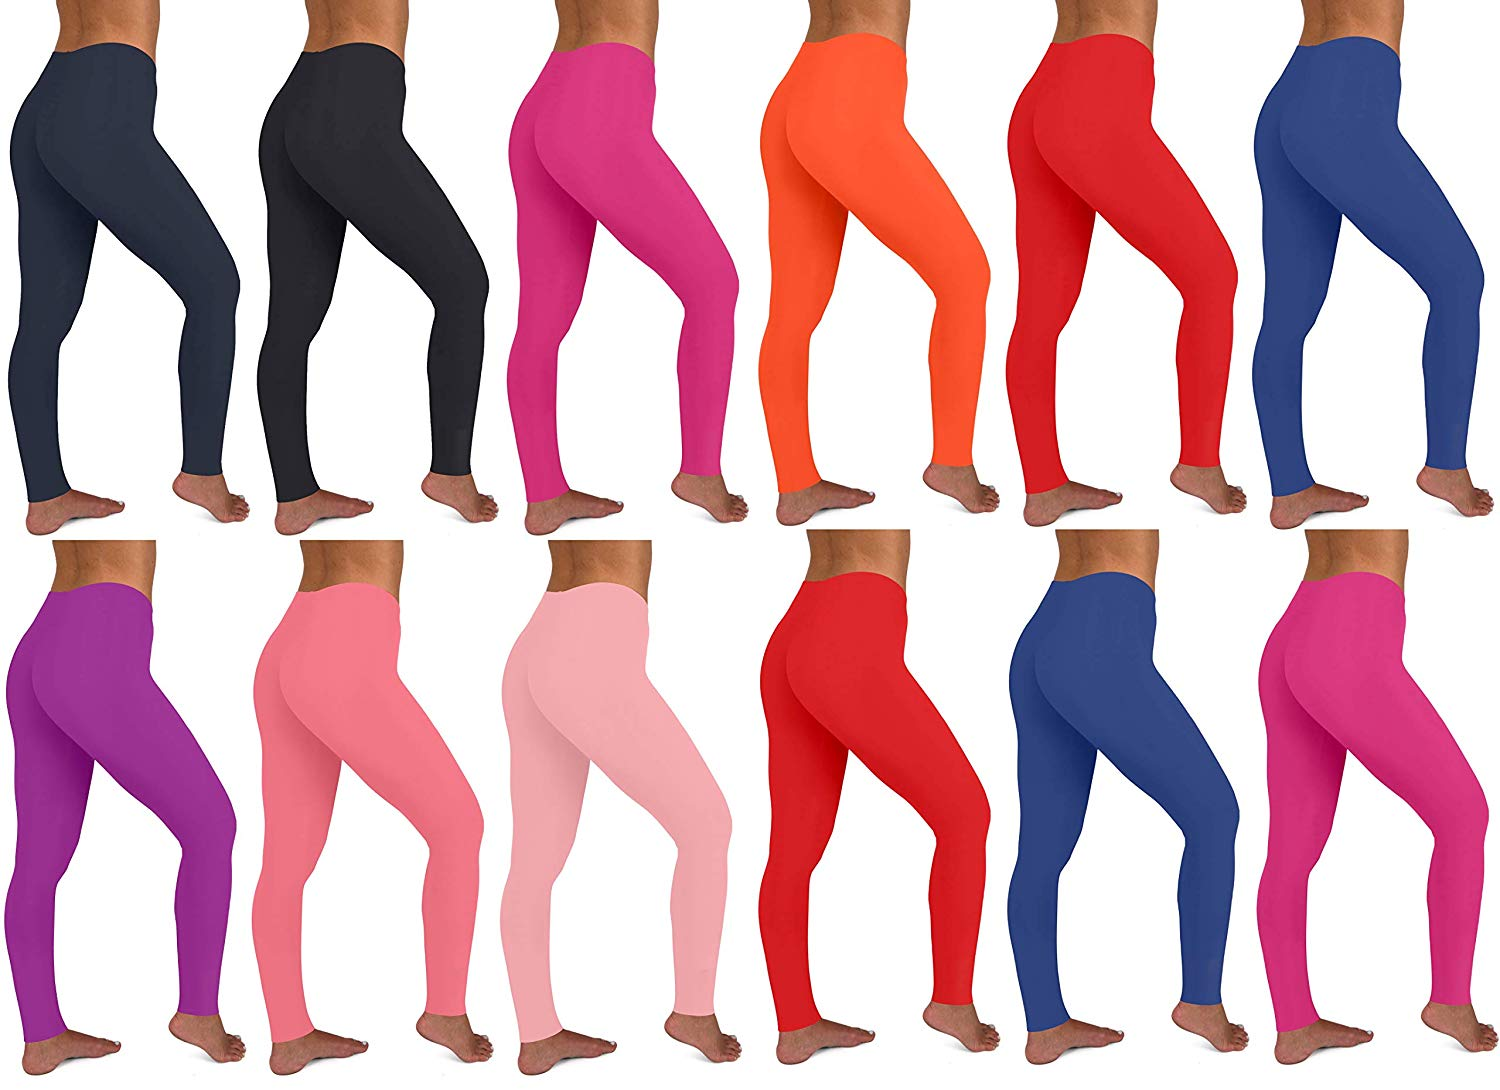 40 Pieces Women's 12 Pack Stretch Cotton Full Length Legging Tights2019 Bamboo Fiber  Silk